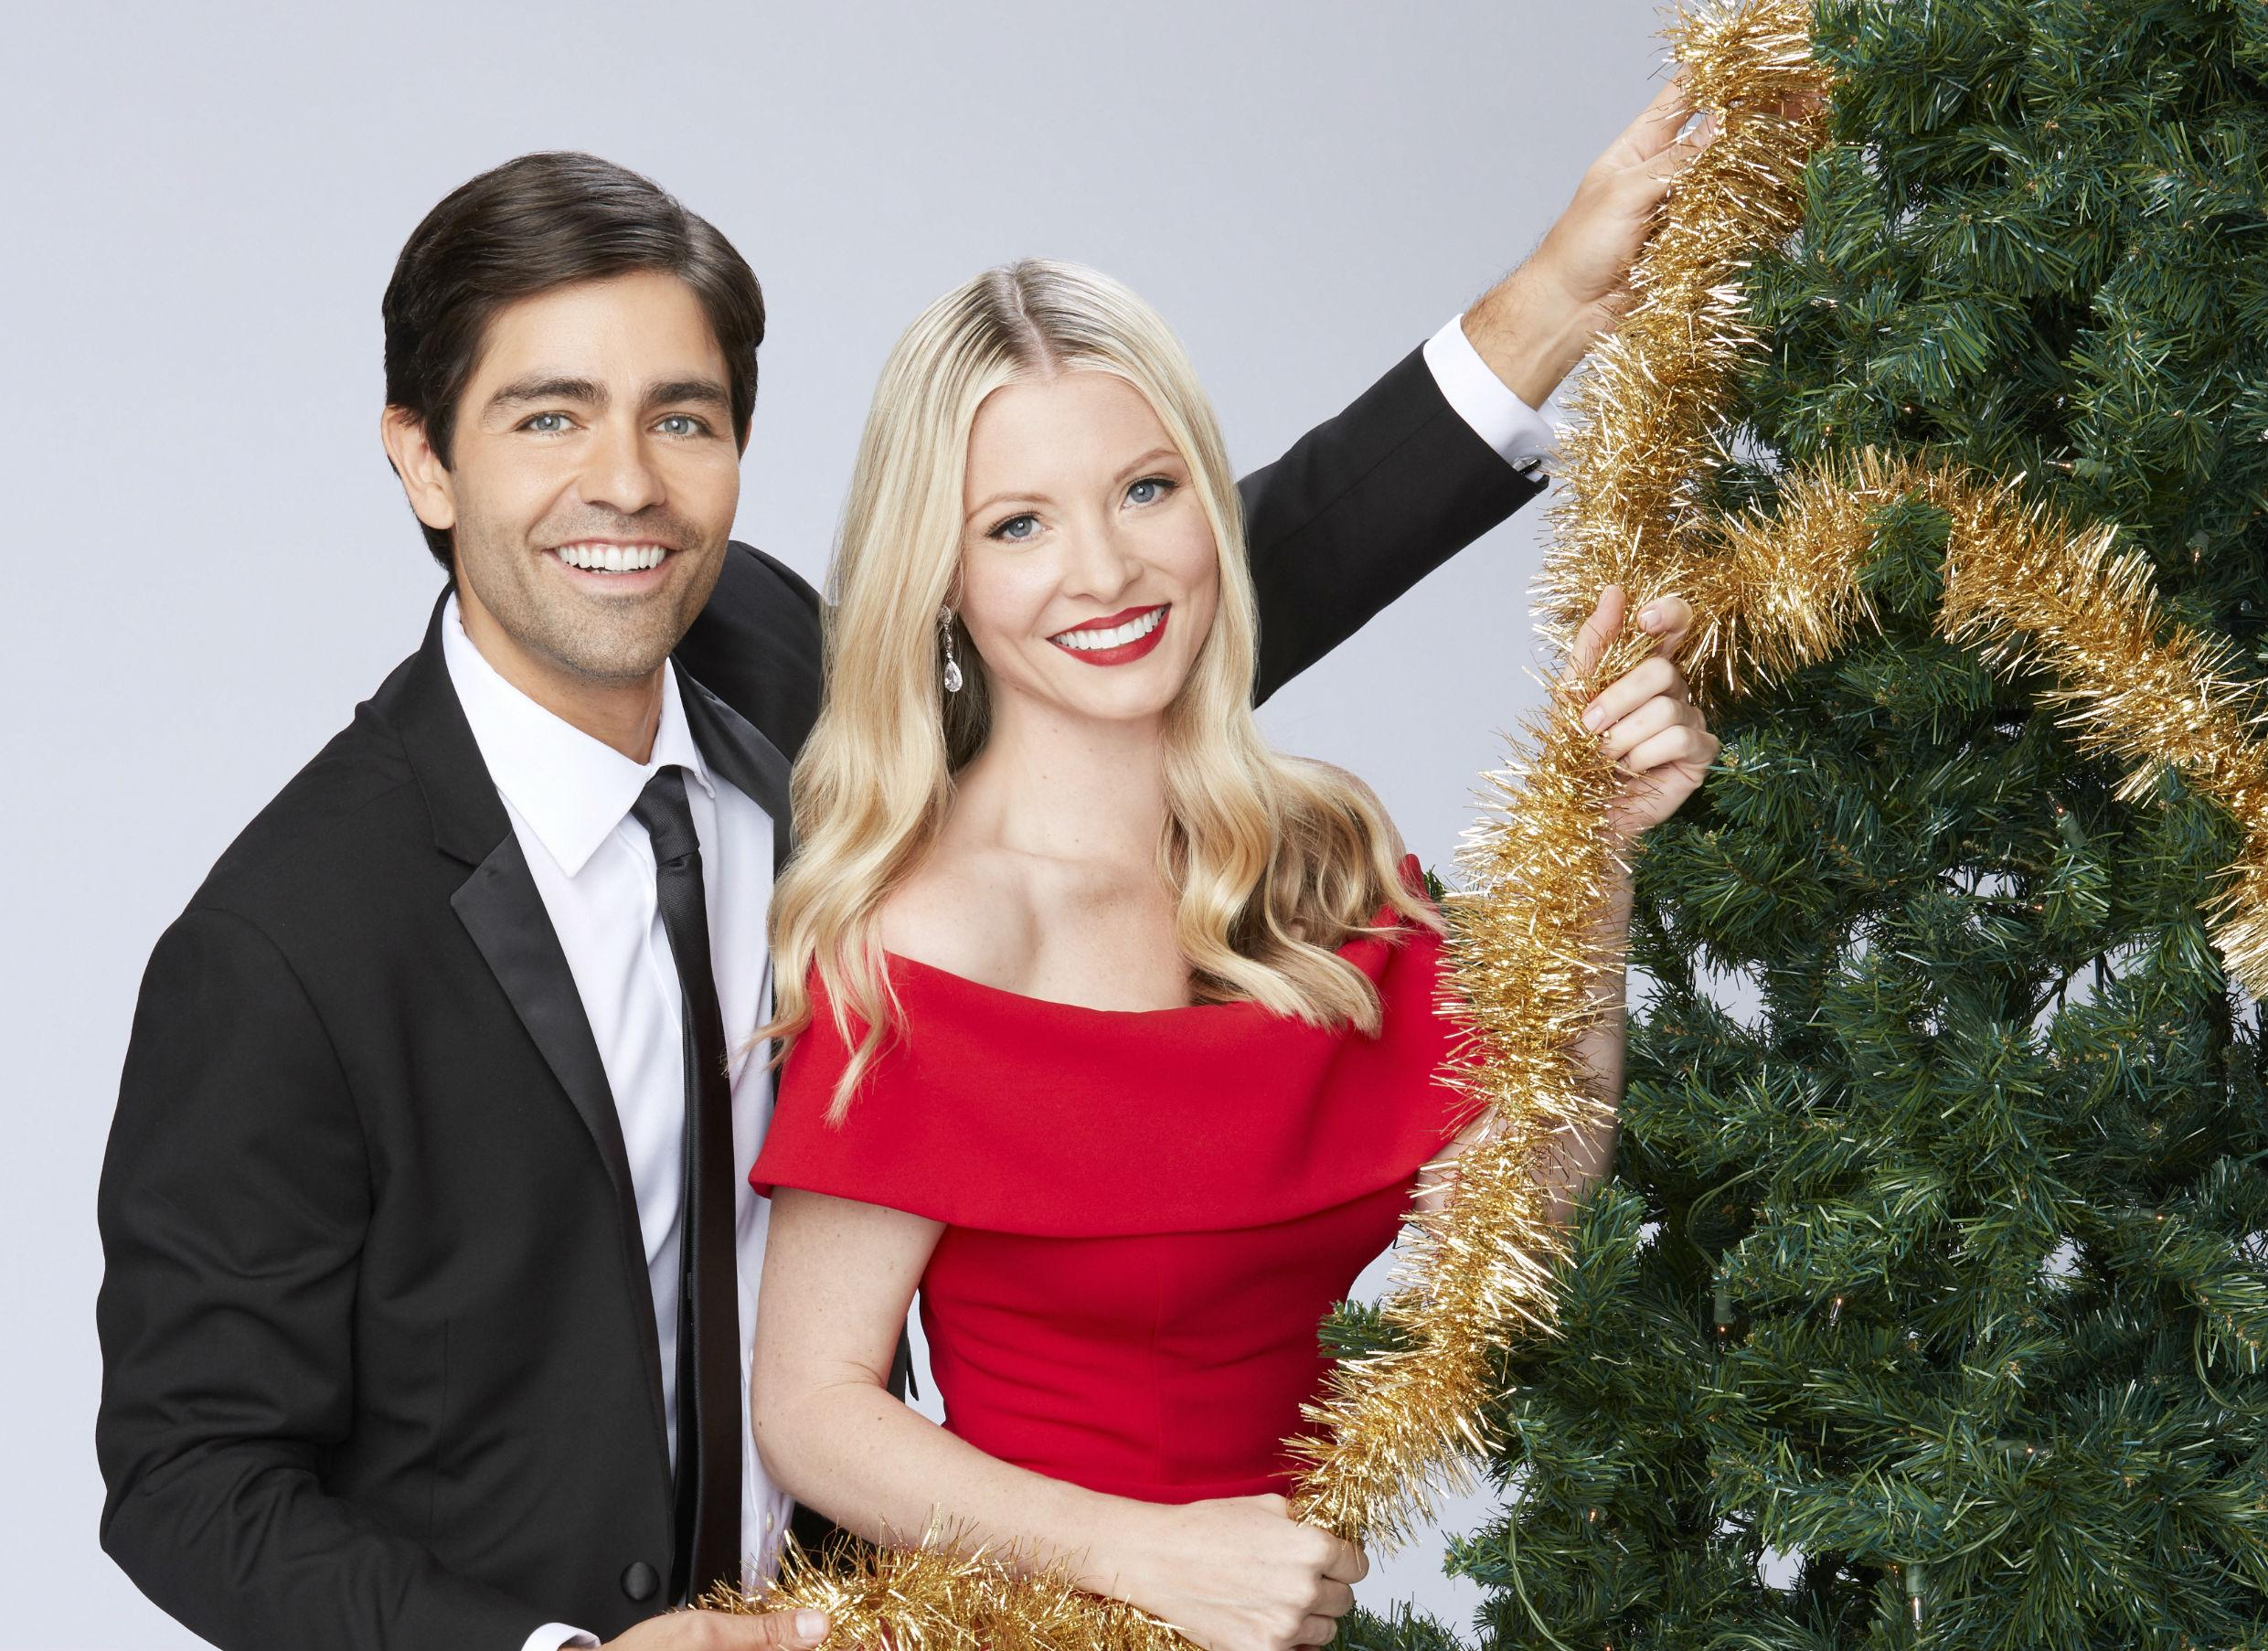 'Christmas At Graceland' 2019 Hallmark Movie Premiere: 'Home For The Holidays' Cast, Trailer